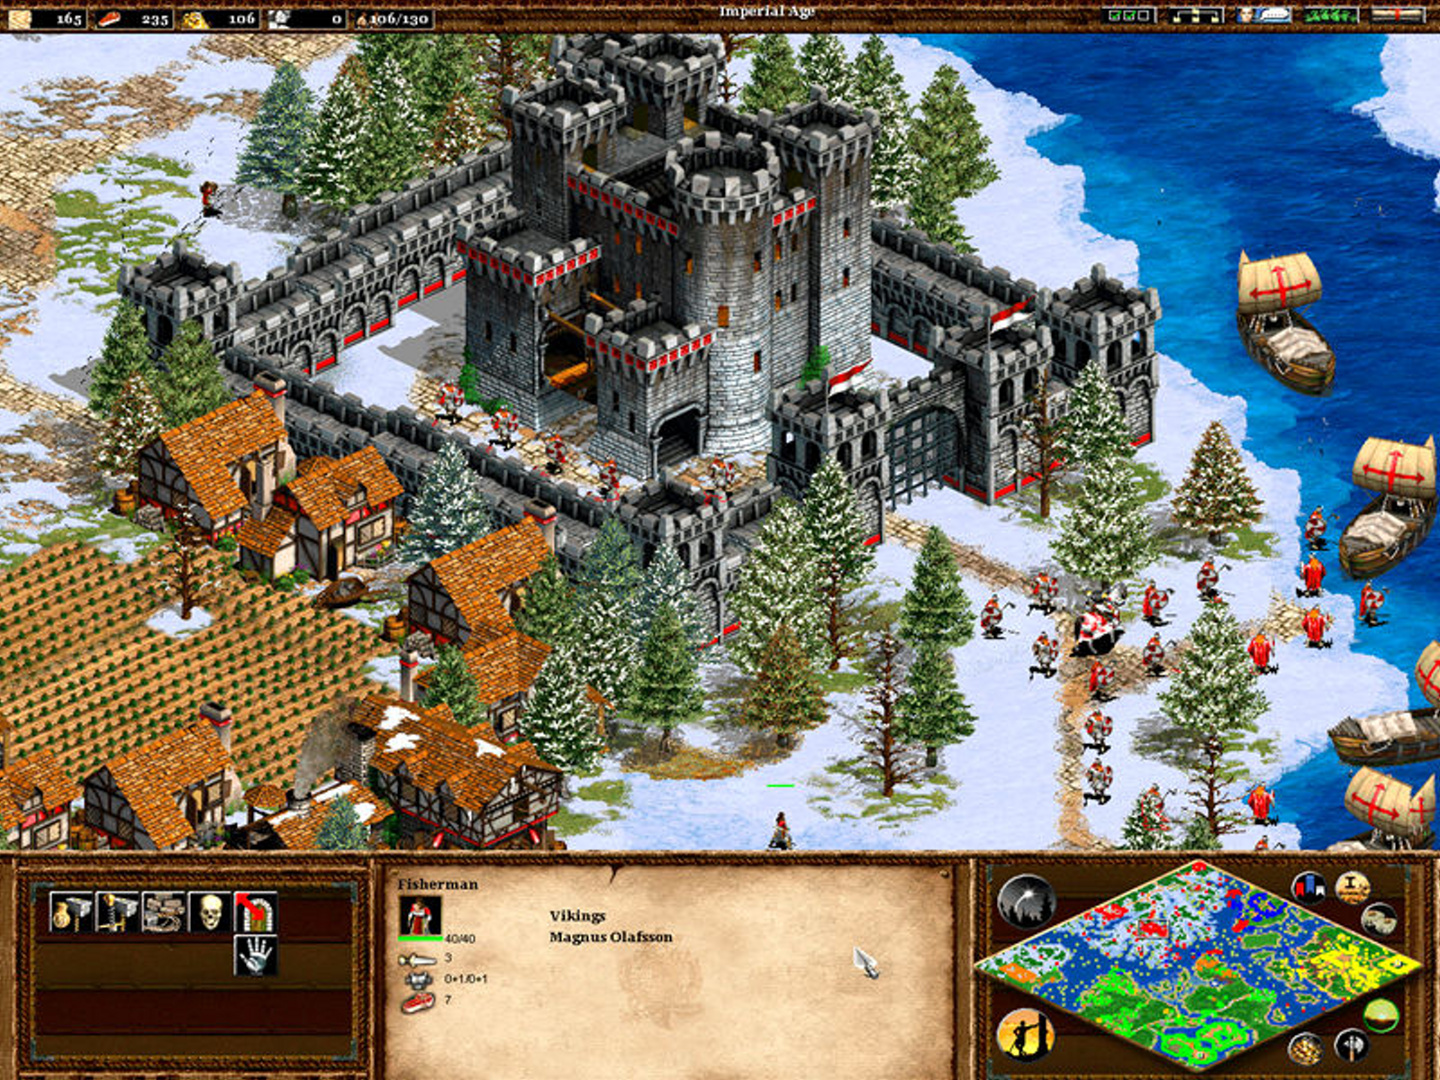 age of empires ii hd steam validating subscriptions